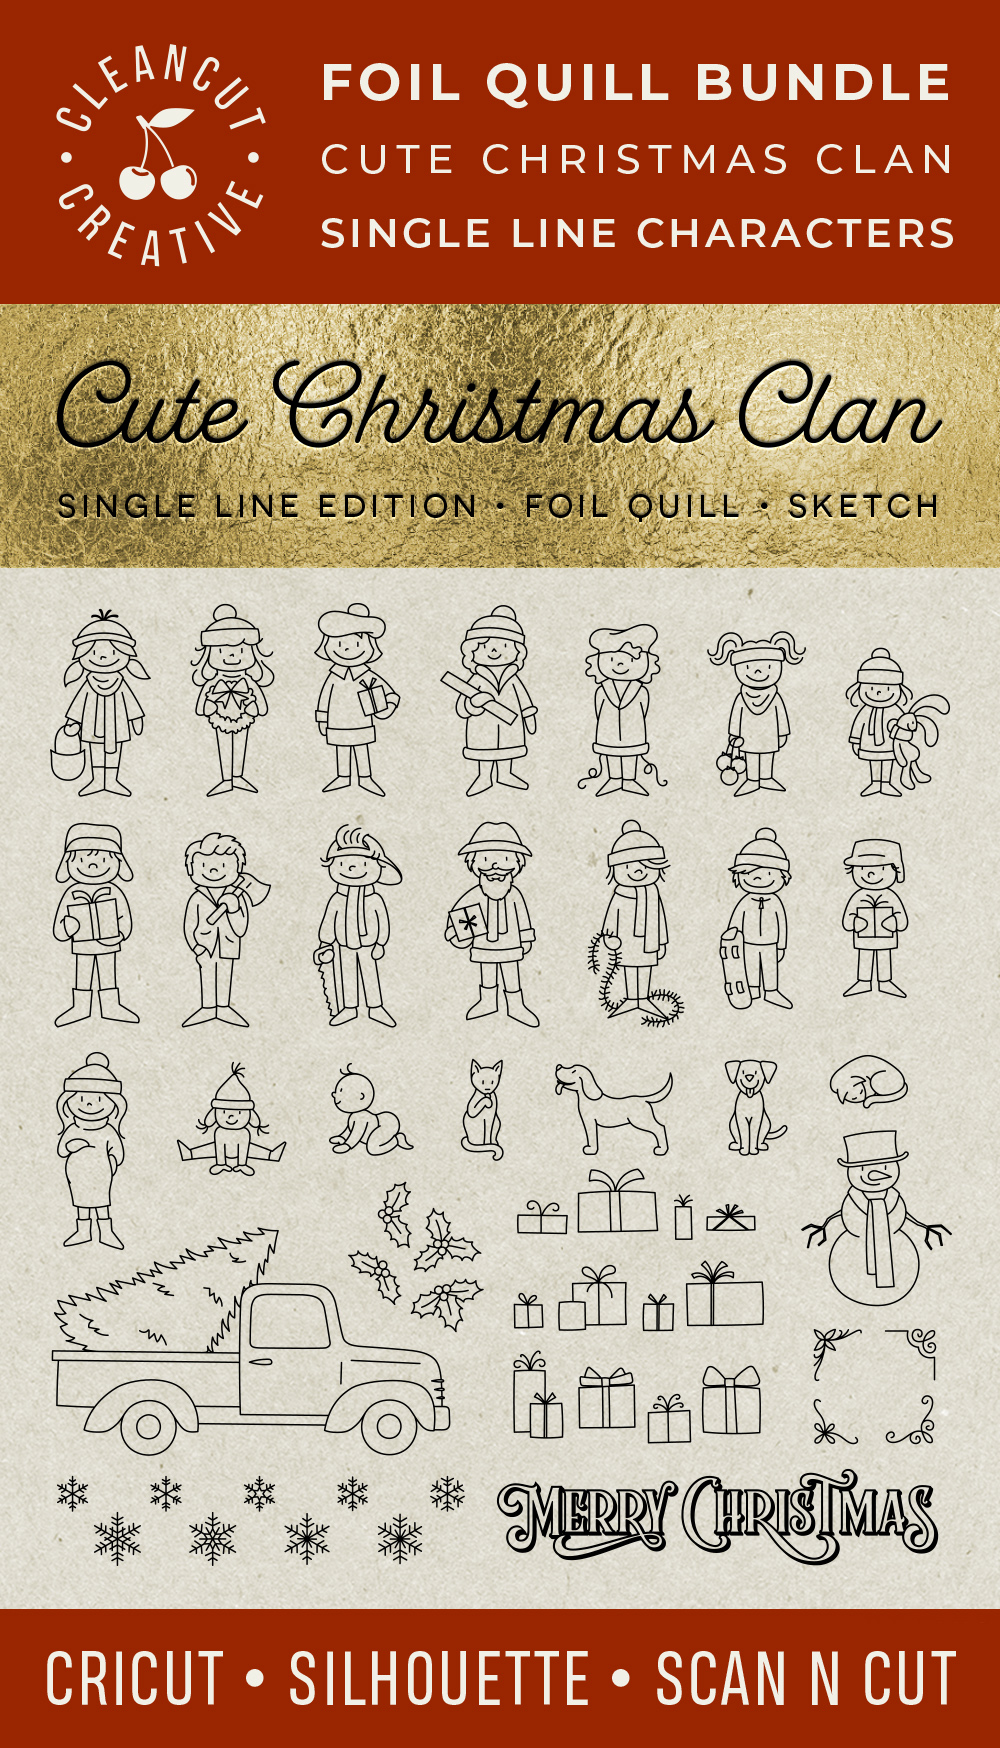 Foil Quill Edition - Cute Christmas Clan - family figures example image 4